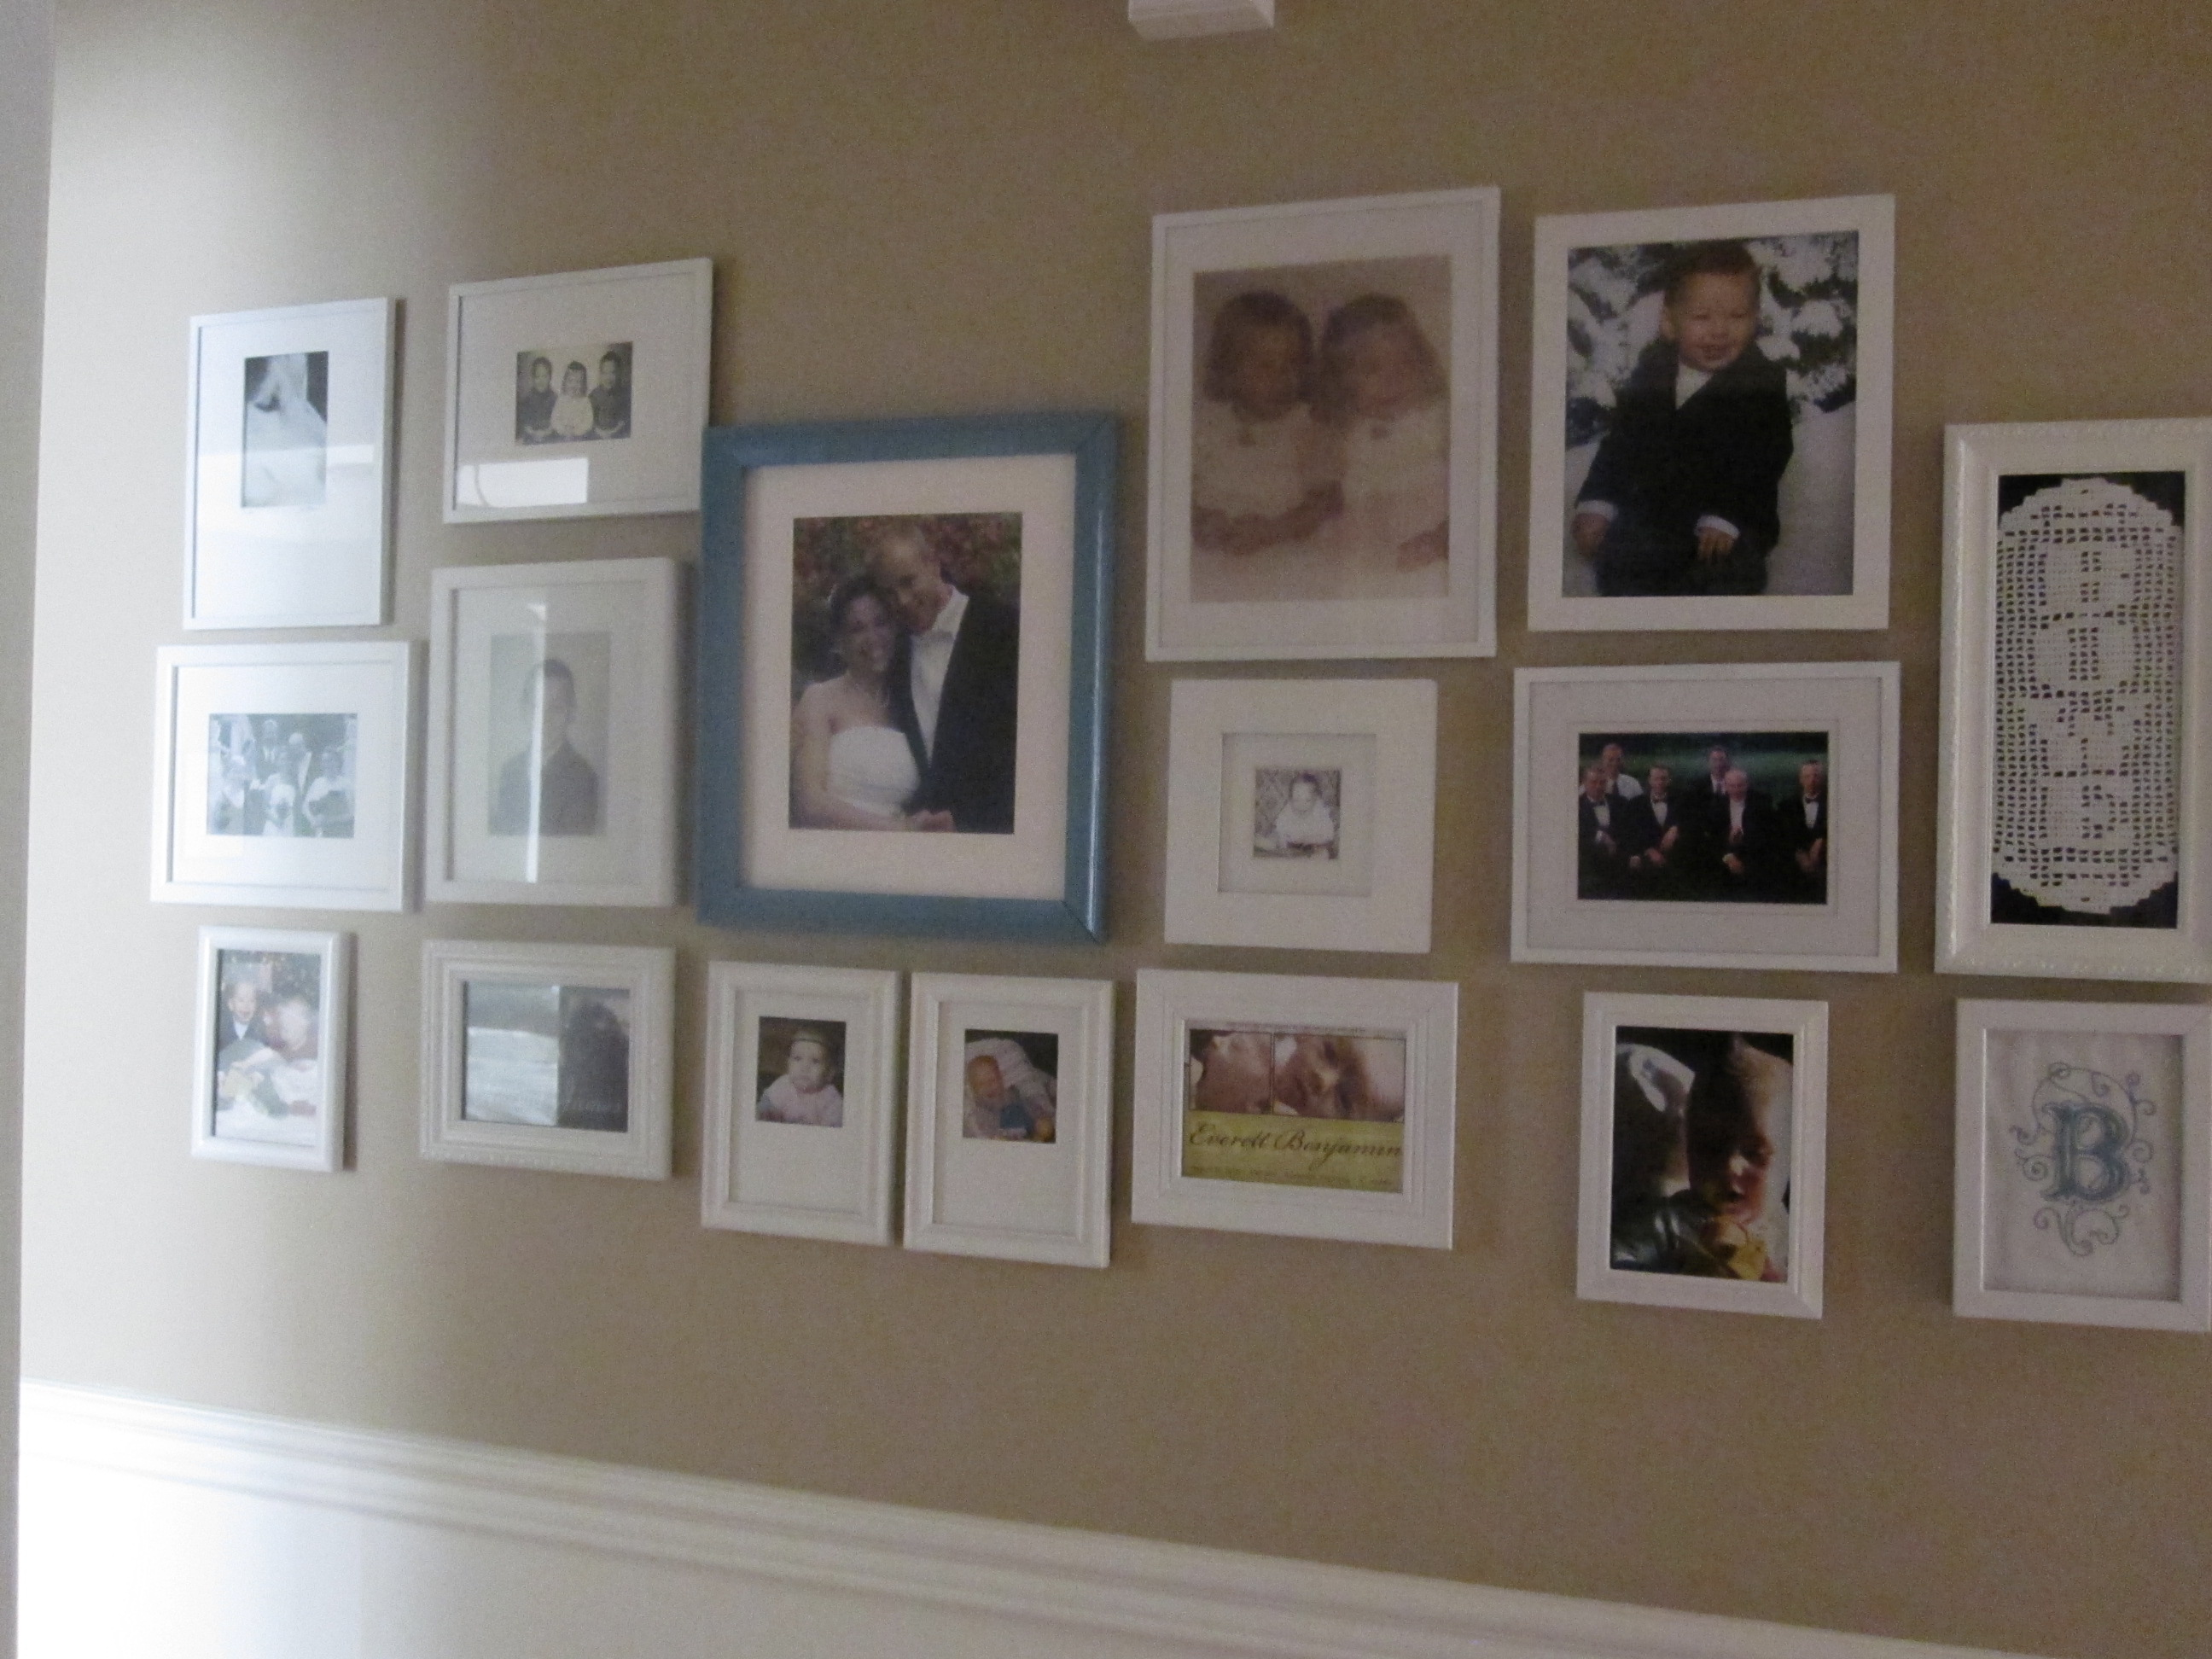 Family picture wall arrangements viewing gallery - Picture arrangements on walls ...